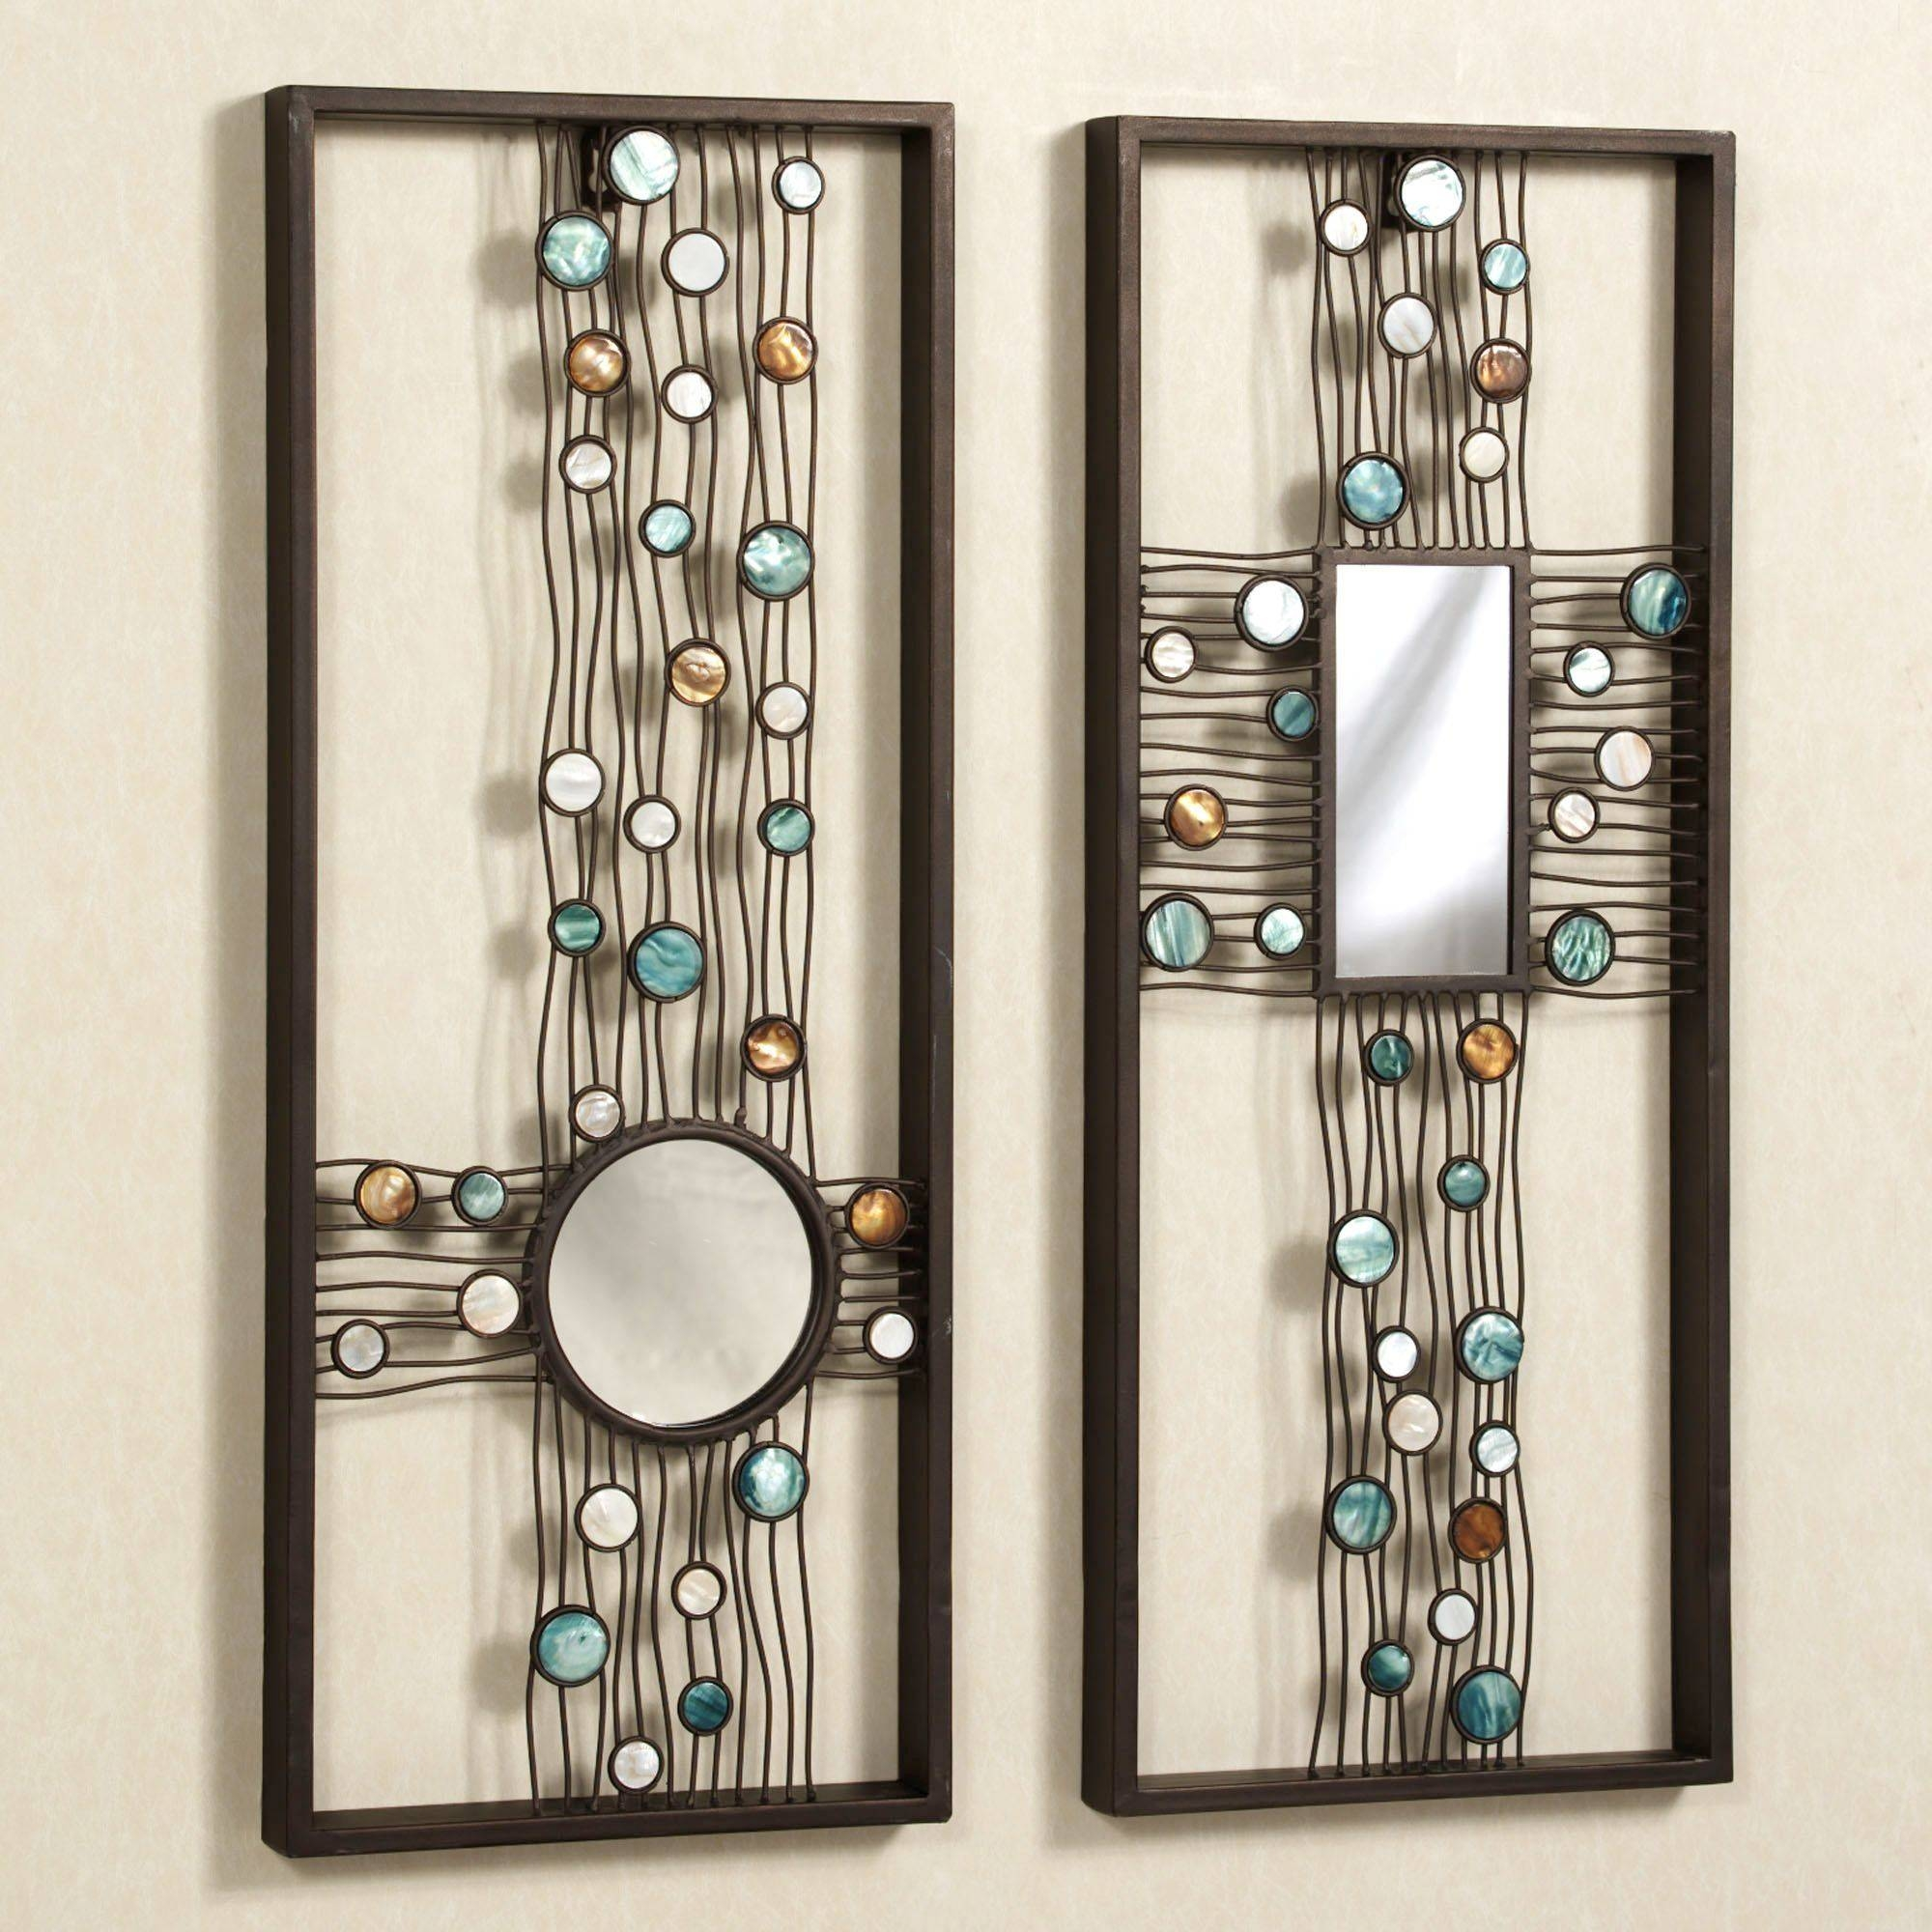 Capizia Metal Wall Panel Art Set Throughout Most Popular Metal Wall Art Mirrors (View 2 of 20)